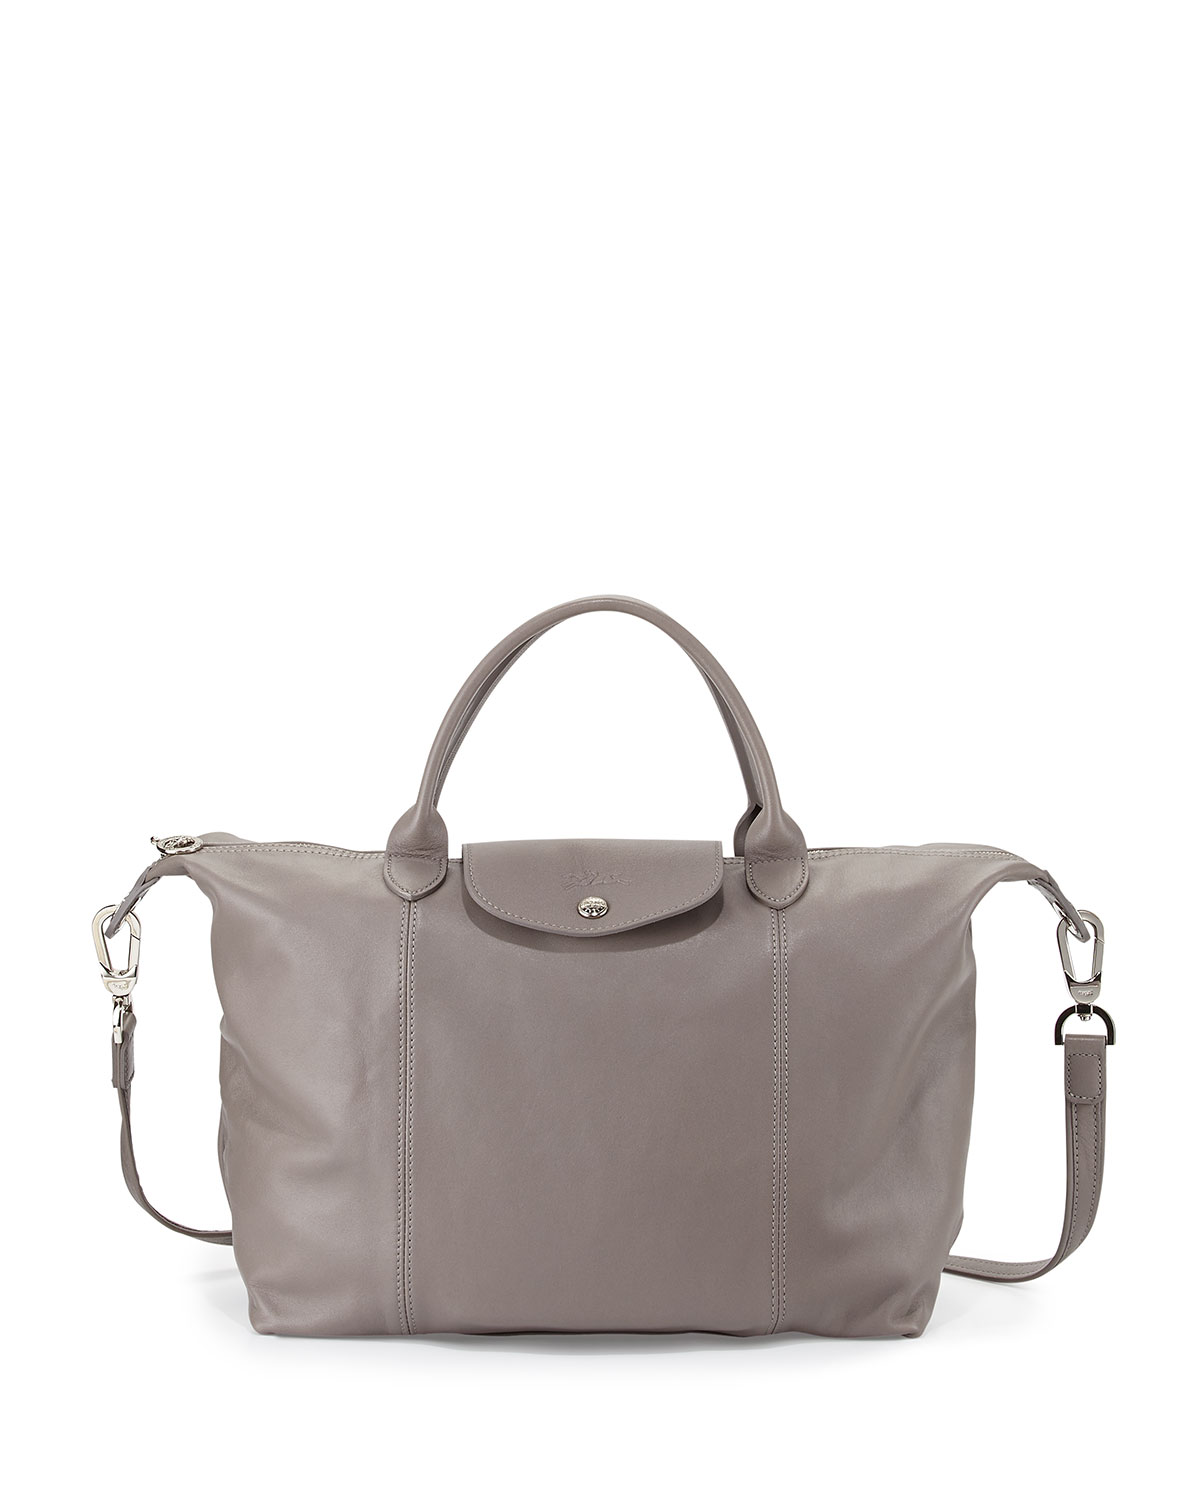 Longchample Pliage Cuir Tote Bag With Strap Gray